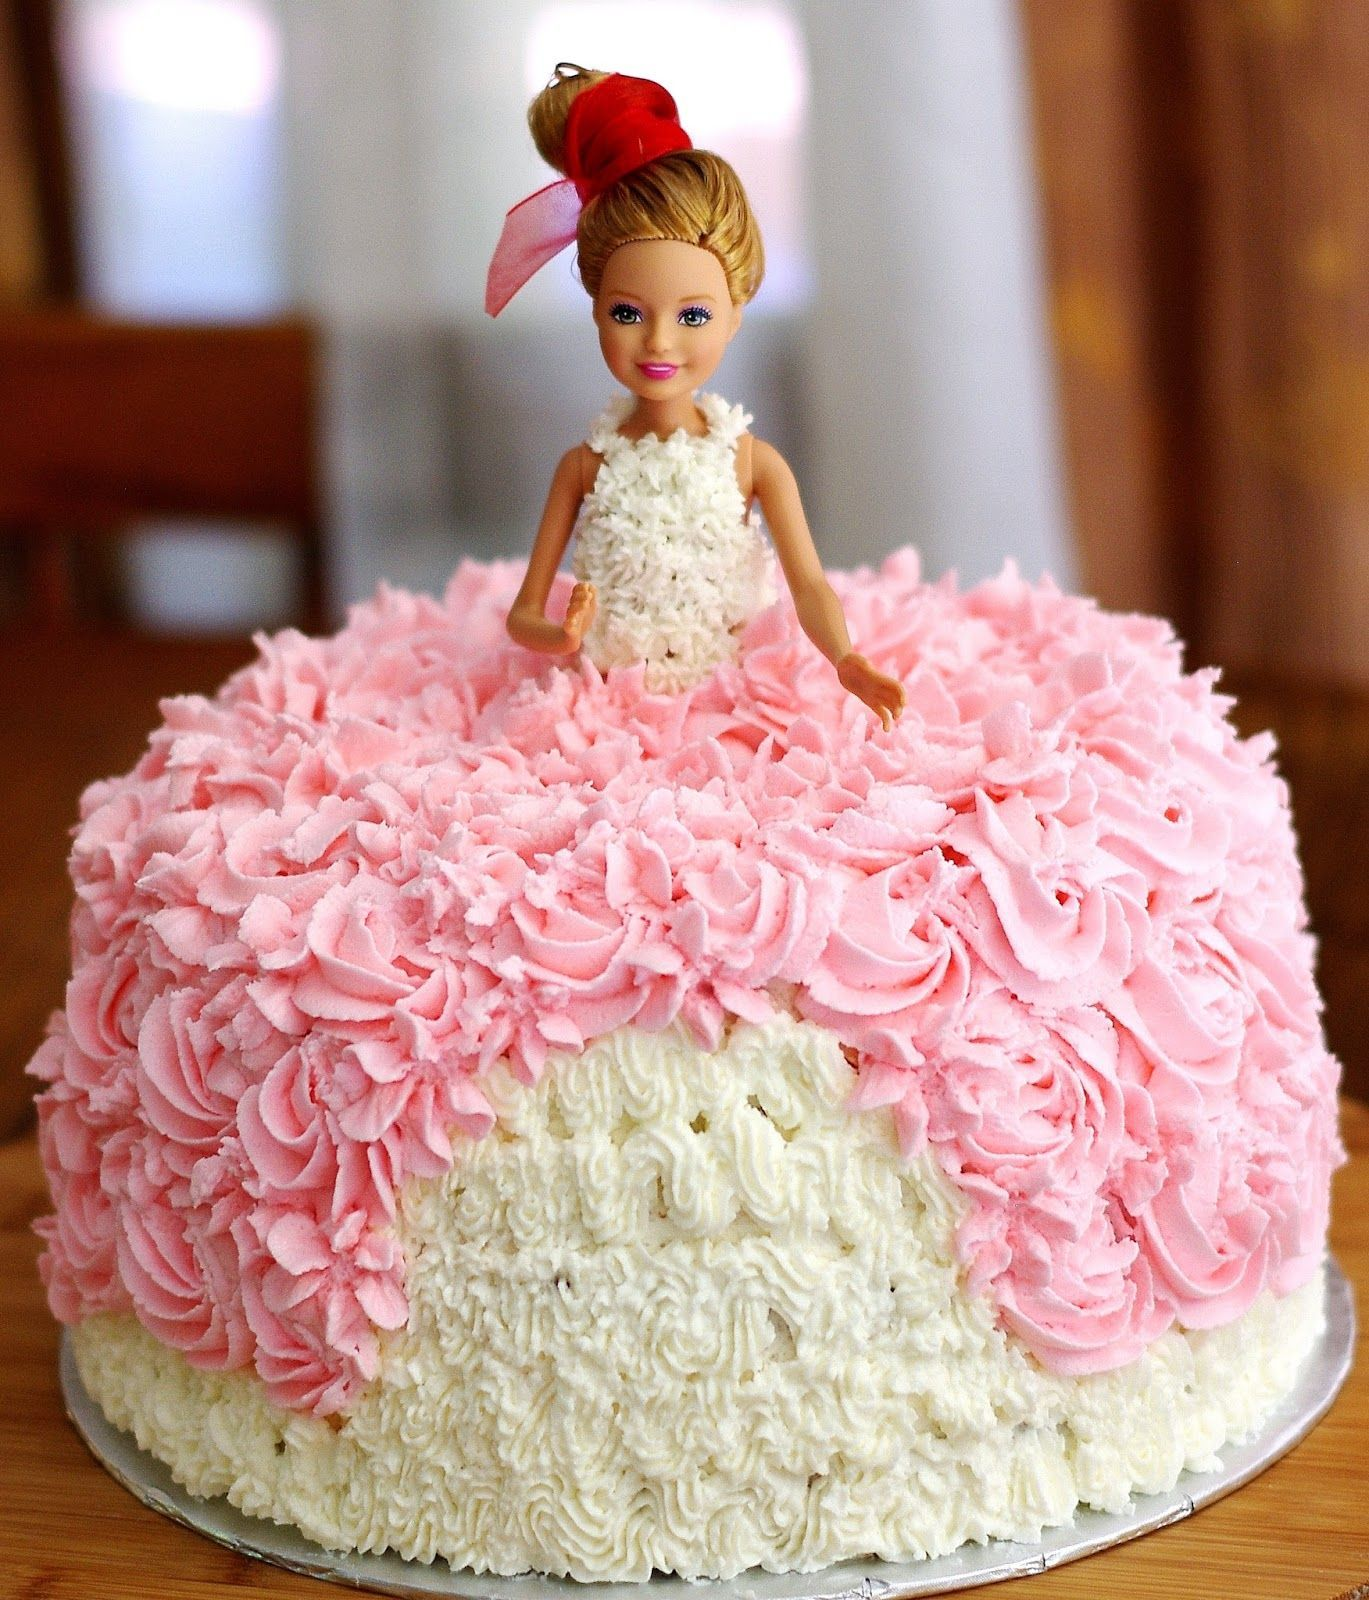 Doll cake topper 24 (multicolour) online at low price in india on amazon.in. 27 Awesome Picture Of Barbie Birthday Cakes Entitlementtrap Com Barbie Doll Birthday Cake Doll Birthday Cake Princess Doll Cake